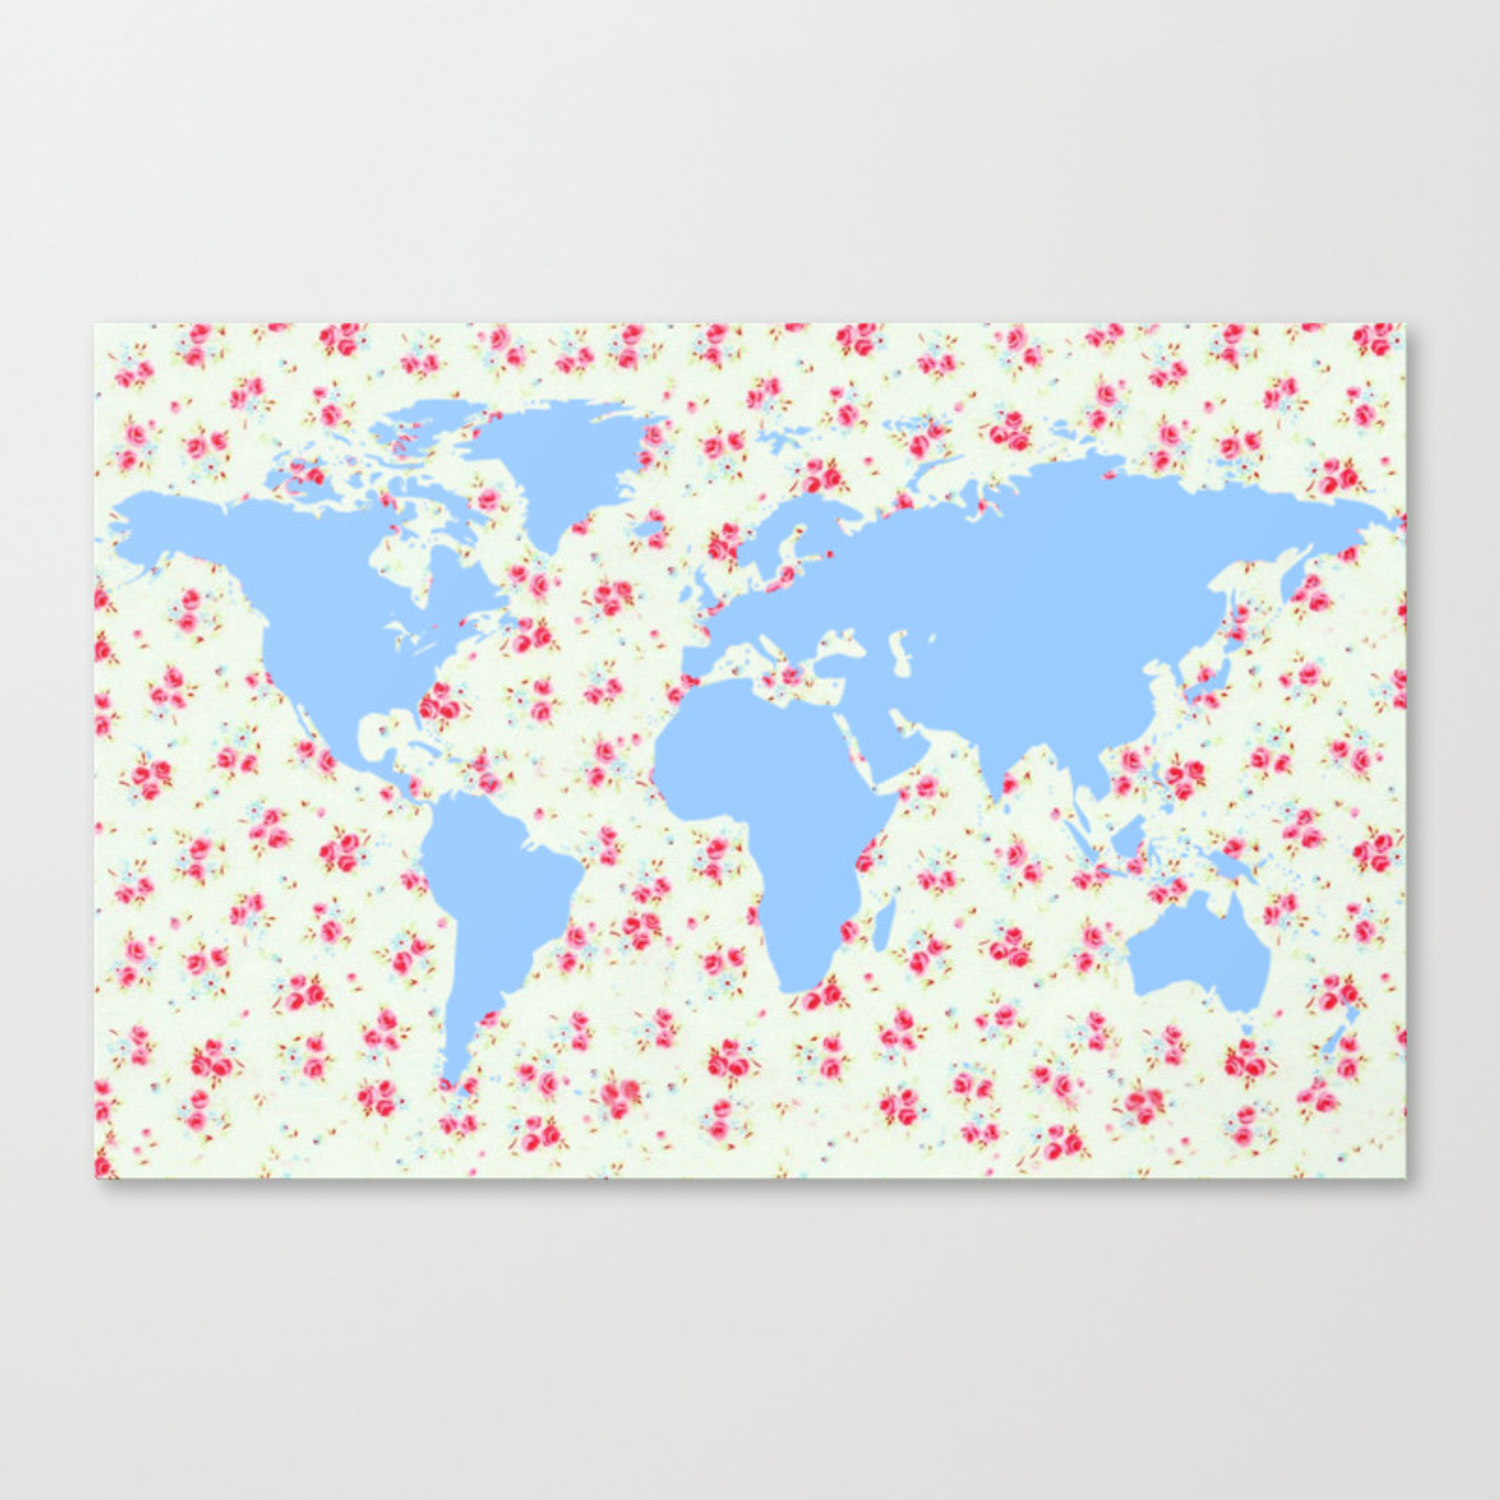 Floral World Map With Pretty Vintage Rose Flowers Background